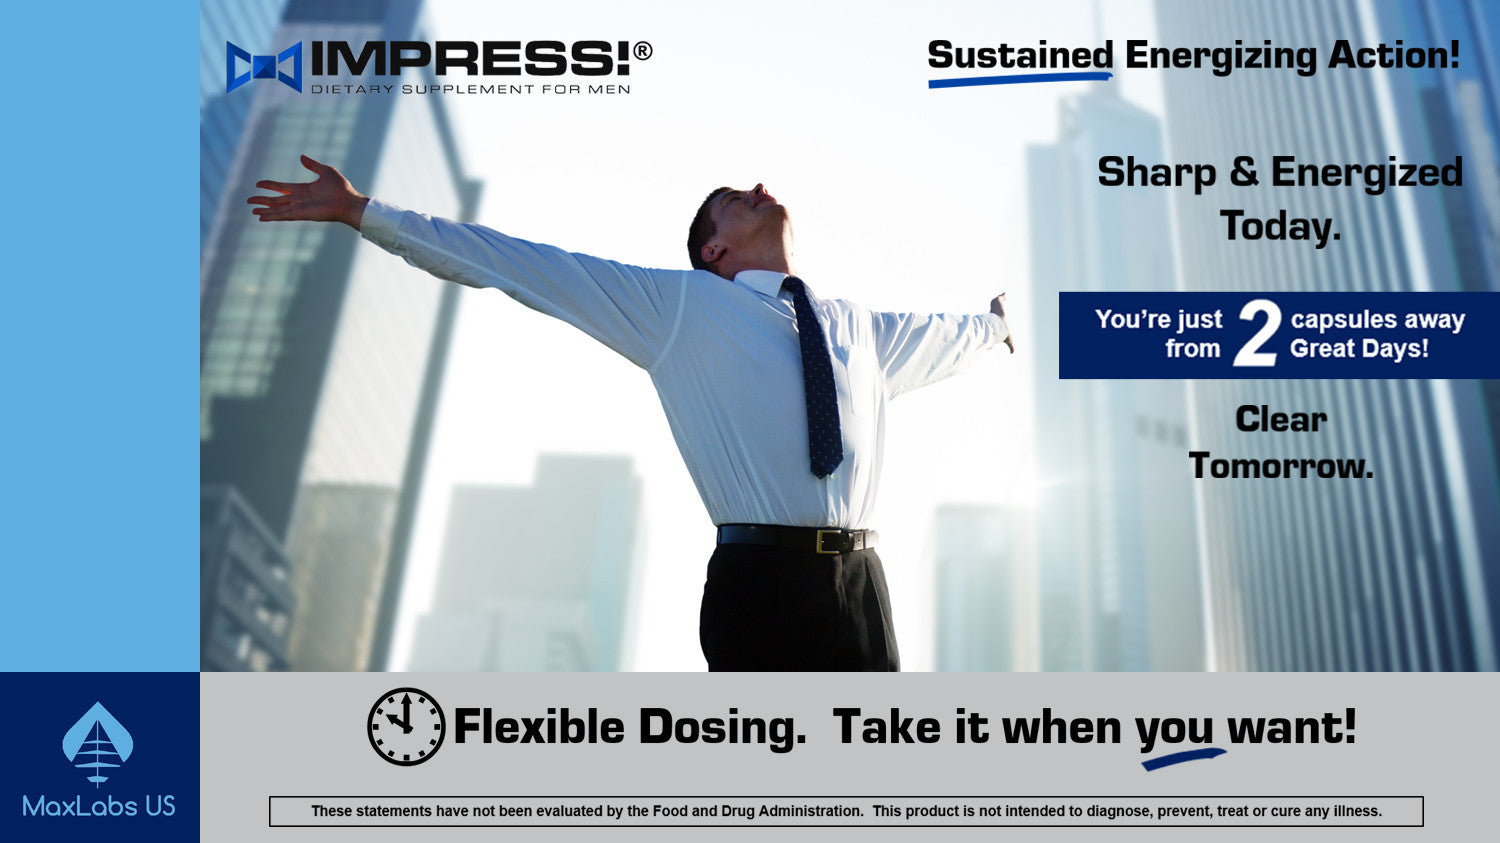 With sustained energizing action you're just two capsules away from 2 great days.  Young man with arms outstretched totally energized before and after a long day at work.